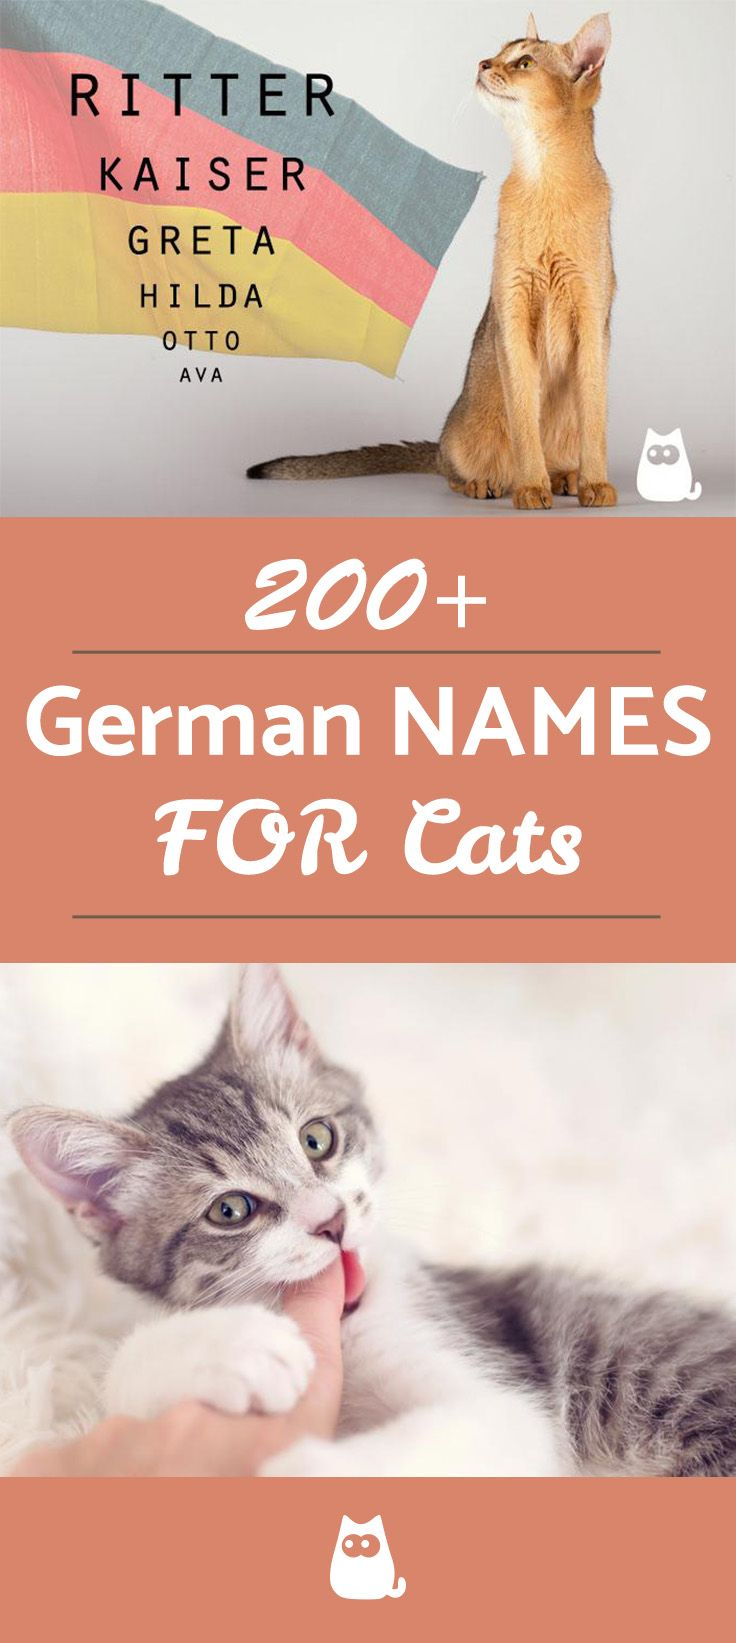 200+ German Names for Cats